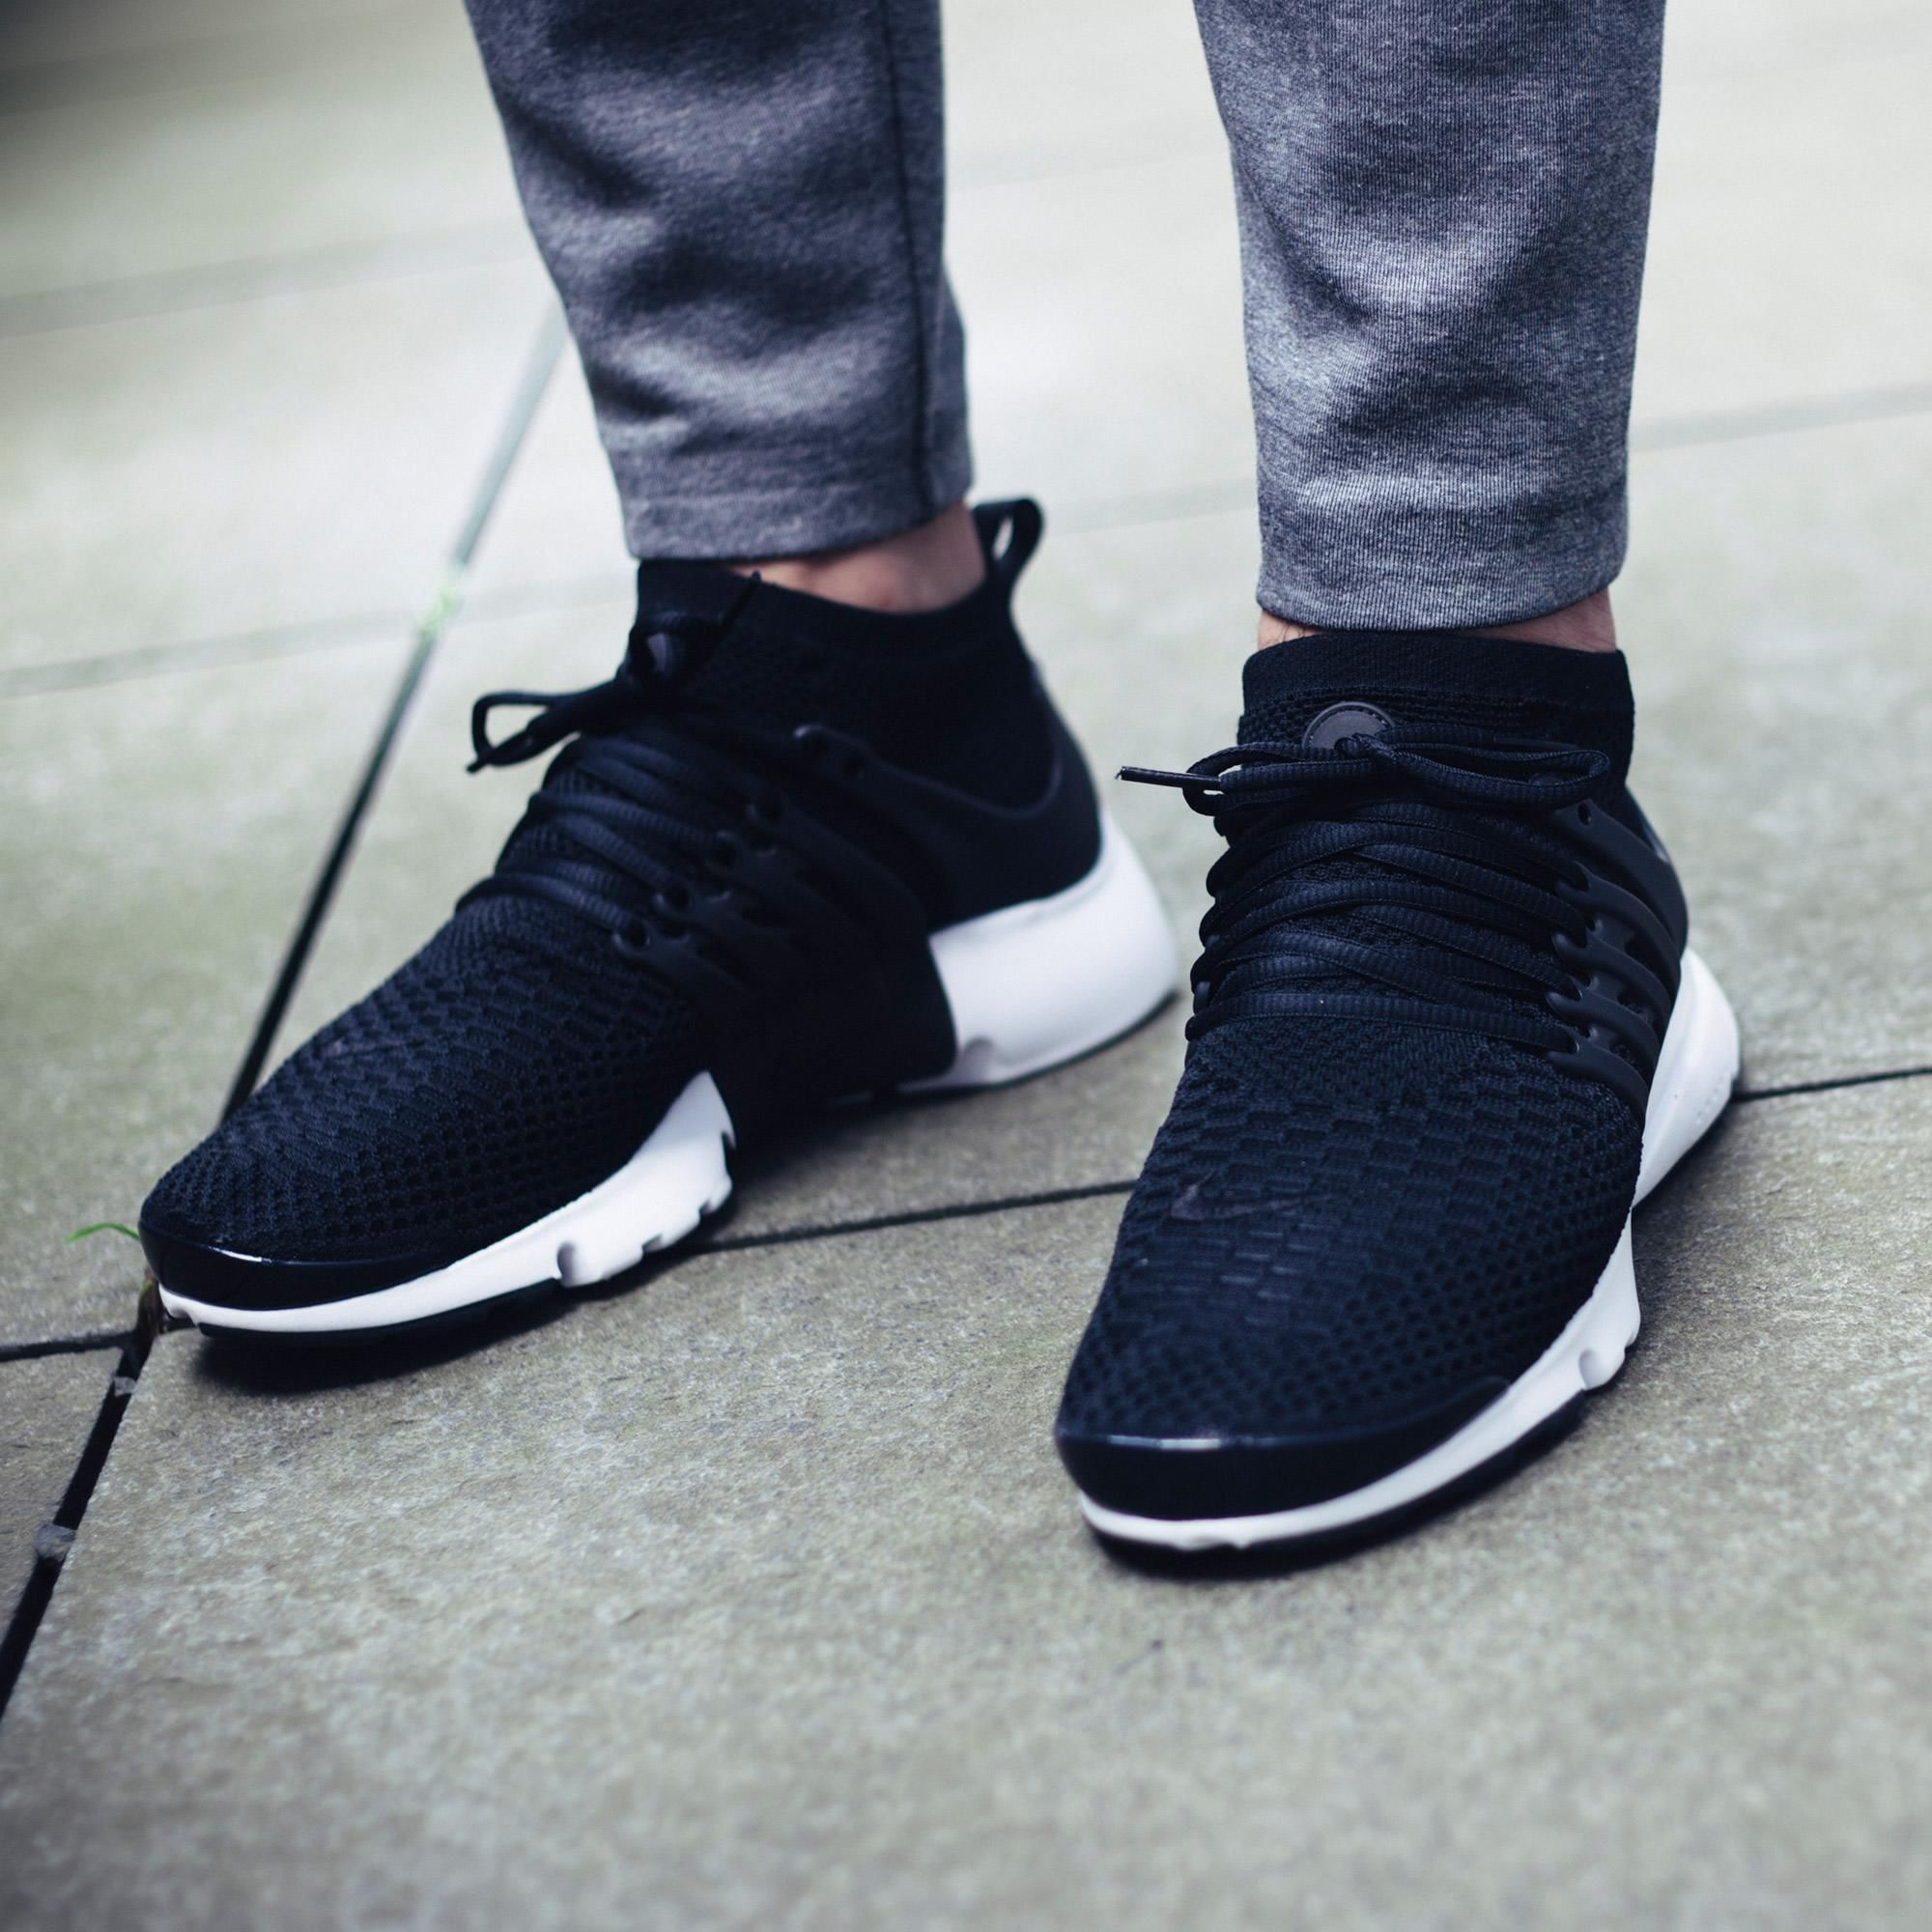 Keep It Stealth With The Nike Air Presto Flyknit Ultra Black Kicksonfire Com Nike Air Shoes All Nike Shoes Classy Shoes